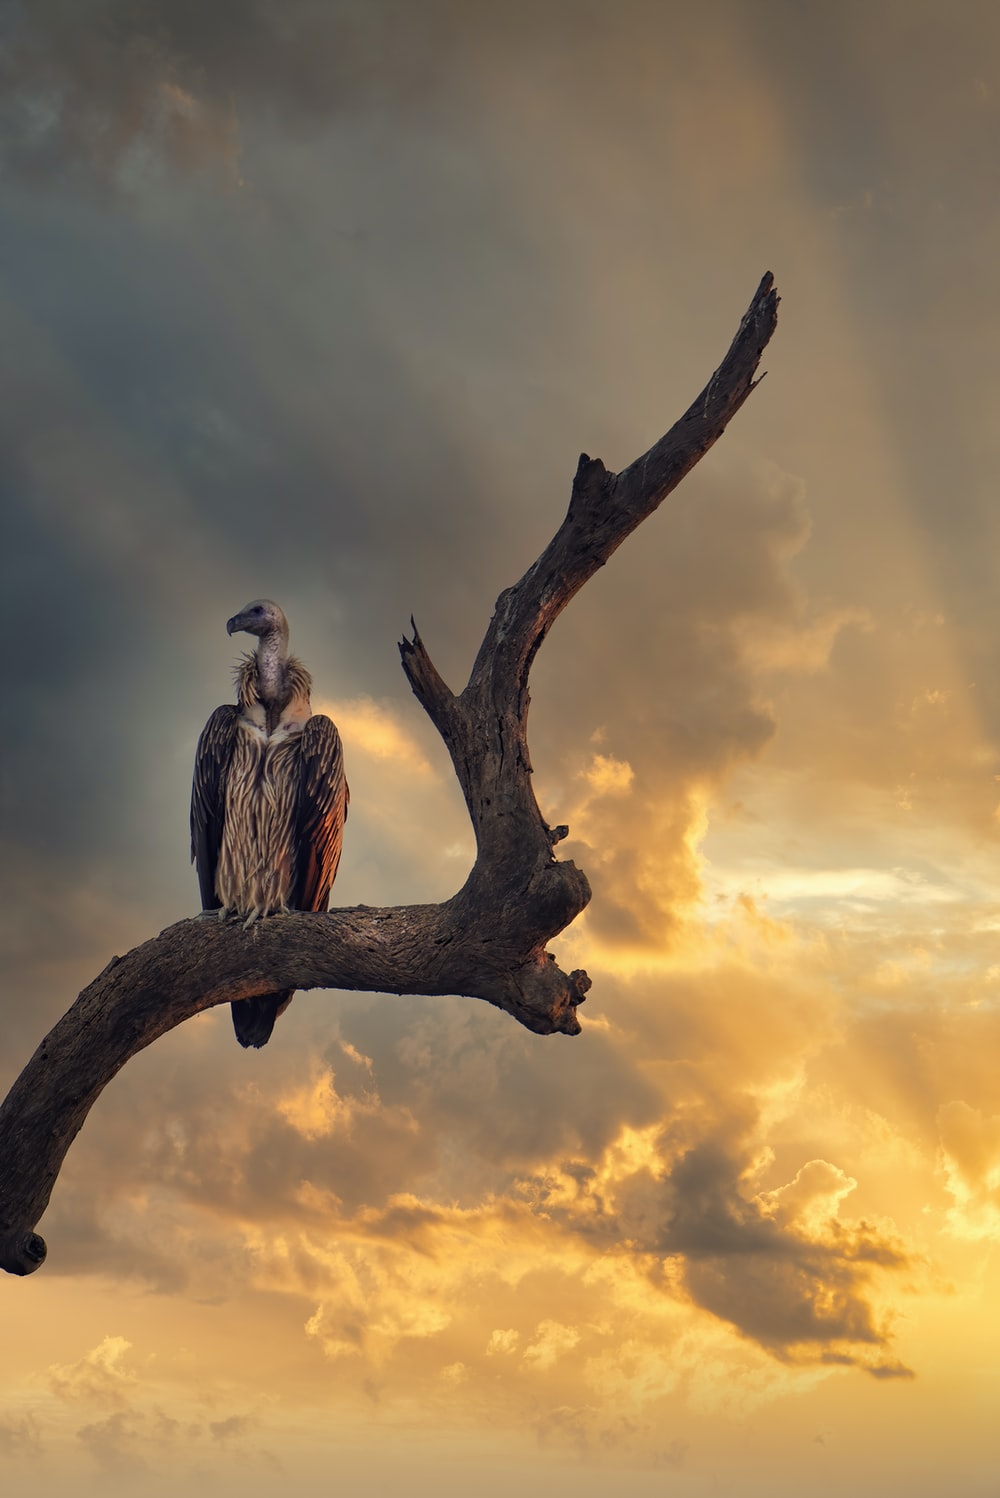 gray and white bird on brown tree branch during sunset